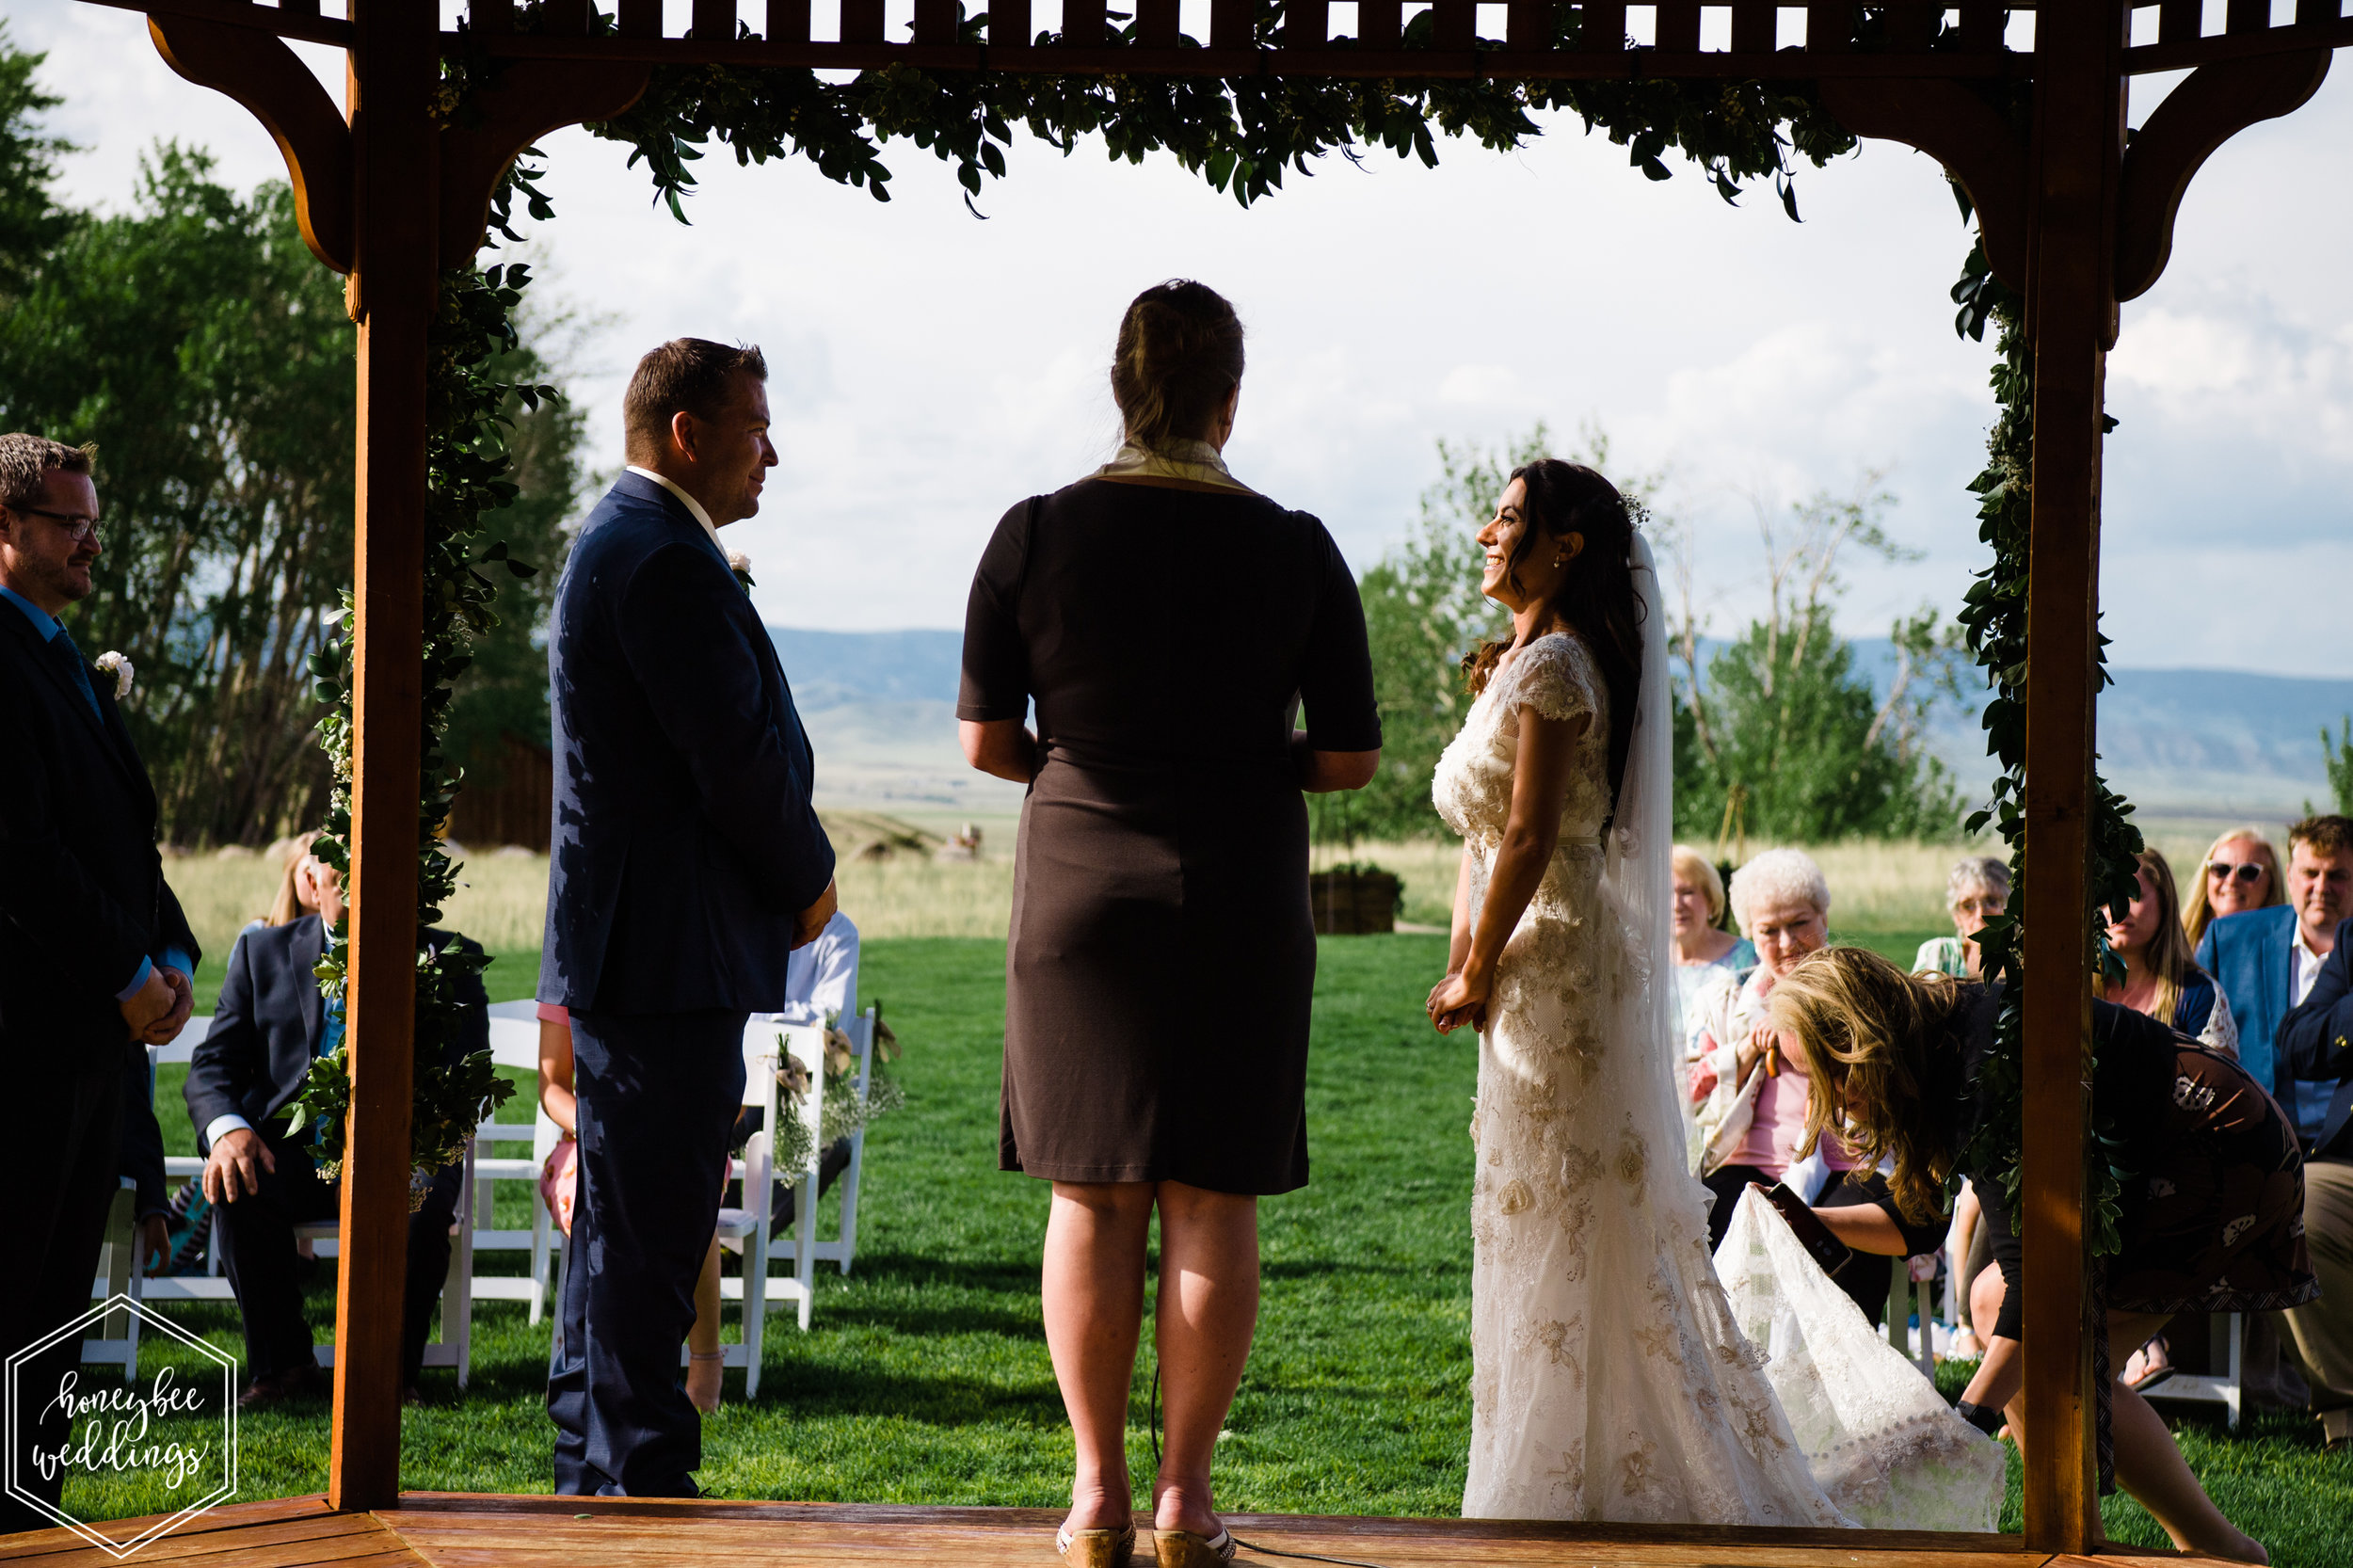 006Montana wedding photographer videographer_Chico hot springs wedding_Honeybee Weddings_Claudia & Bill_June 03, 2019-123.jpg